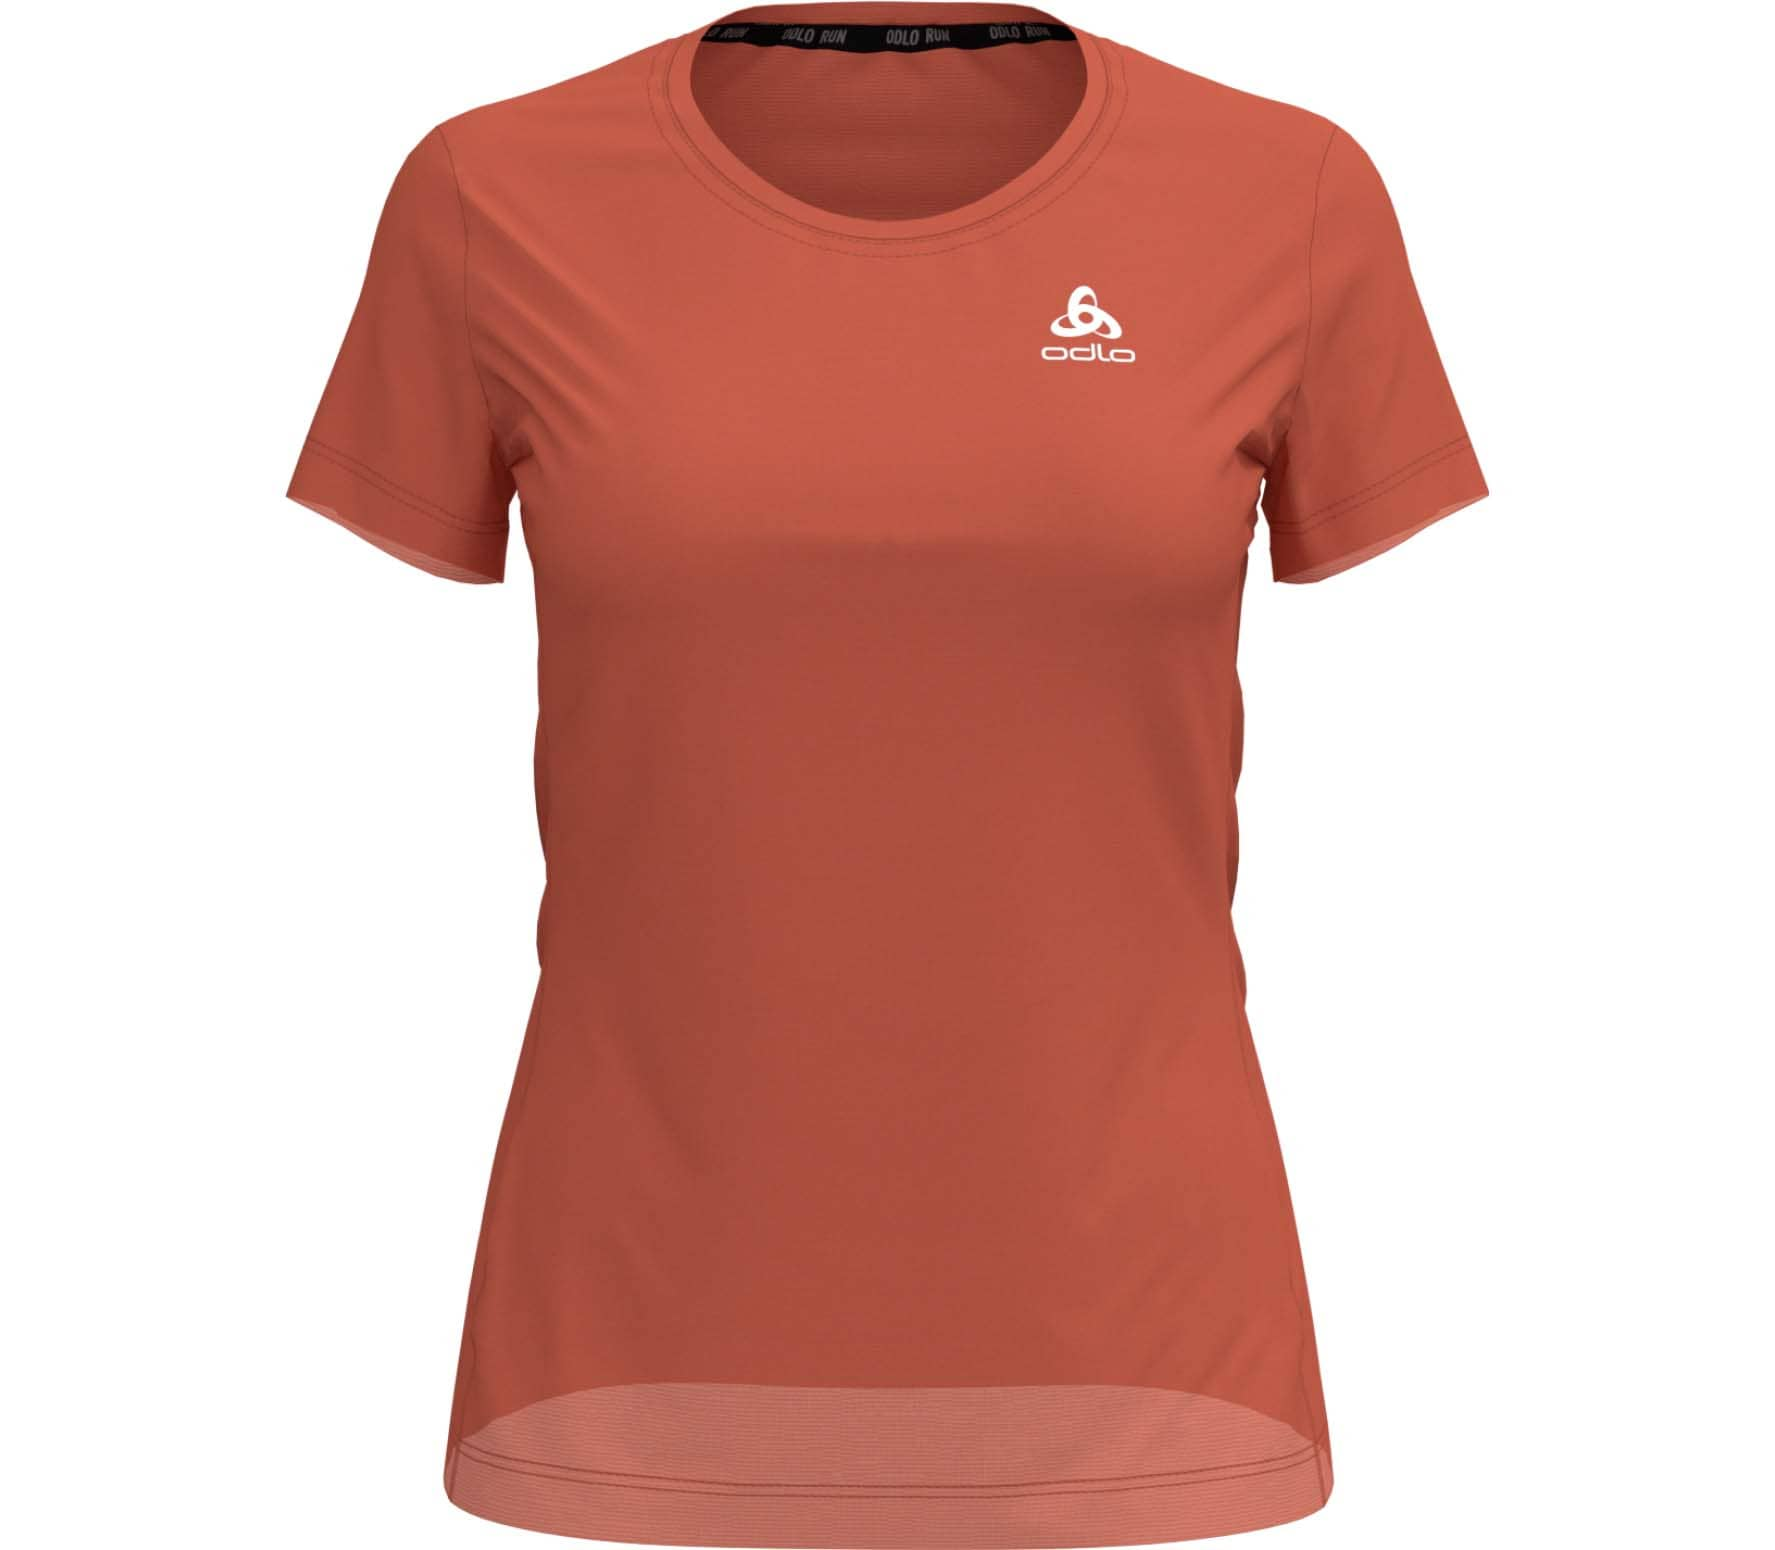 Odlo - BL Crew Neck Element Light Femmes chemise de course (Orange)